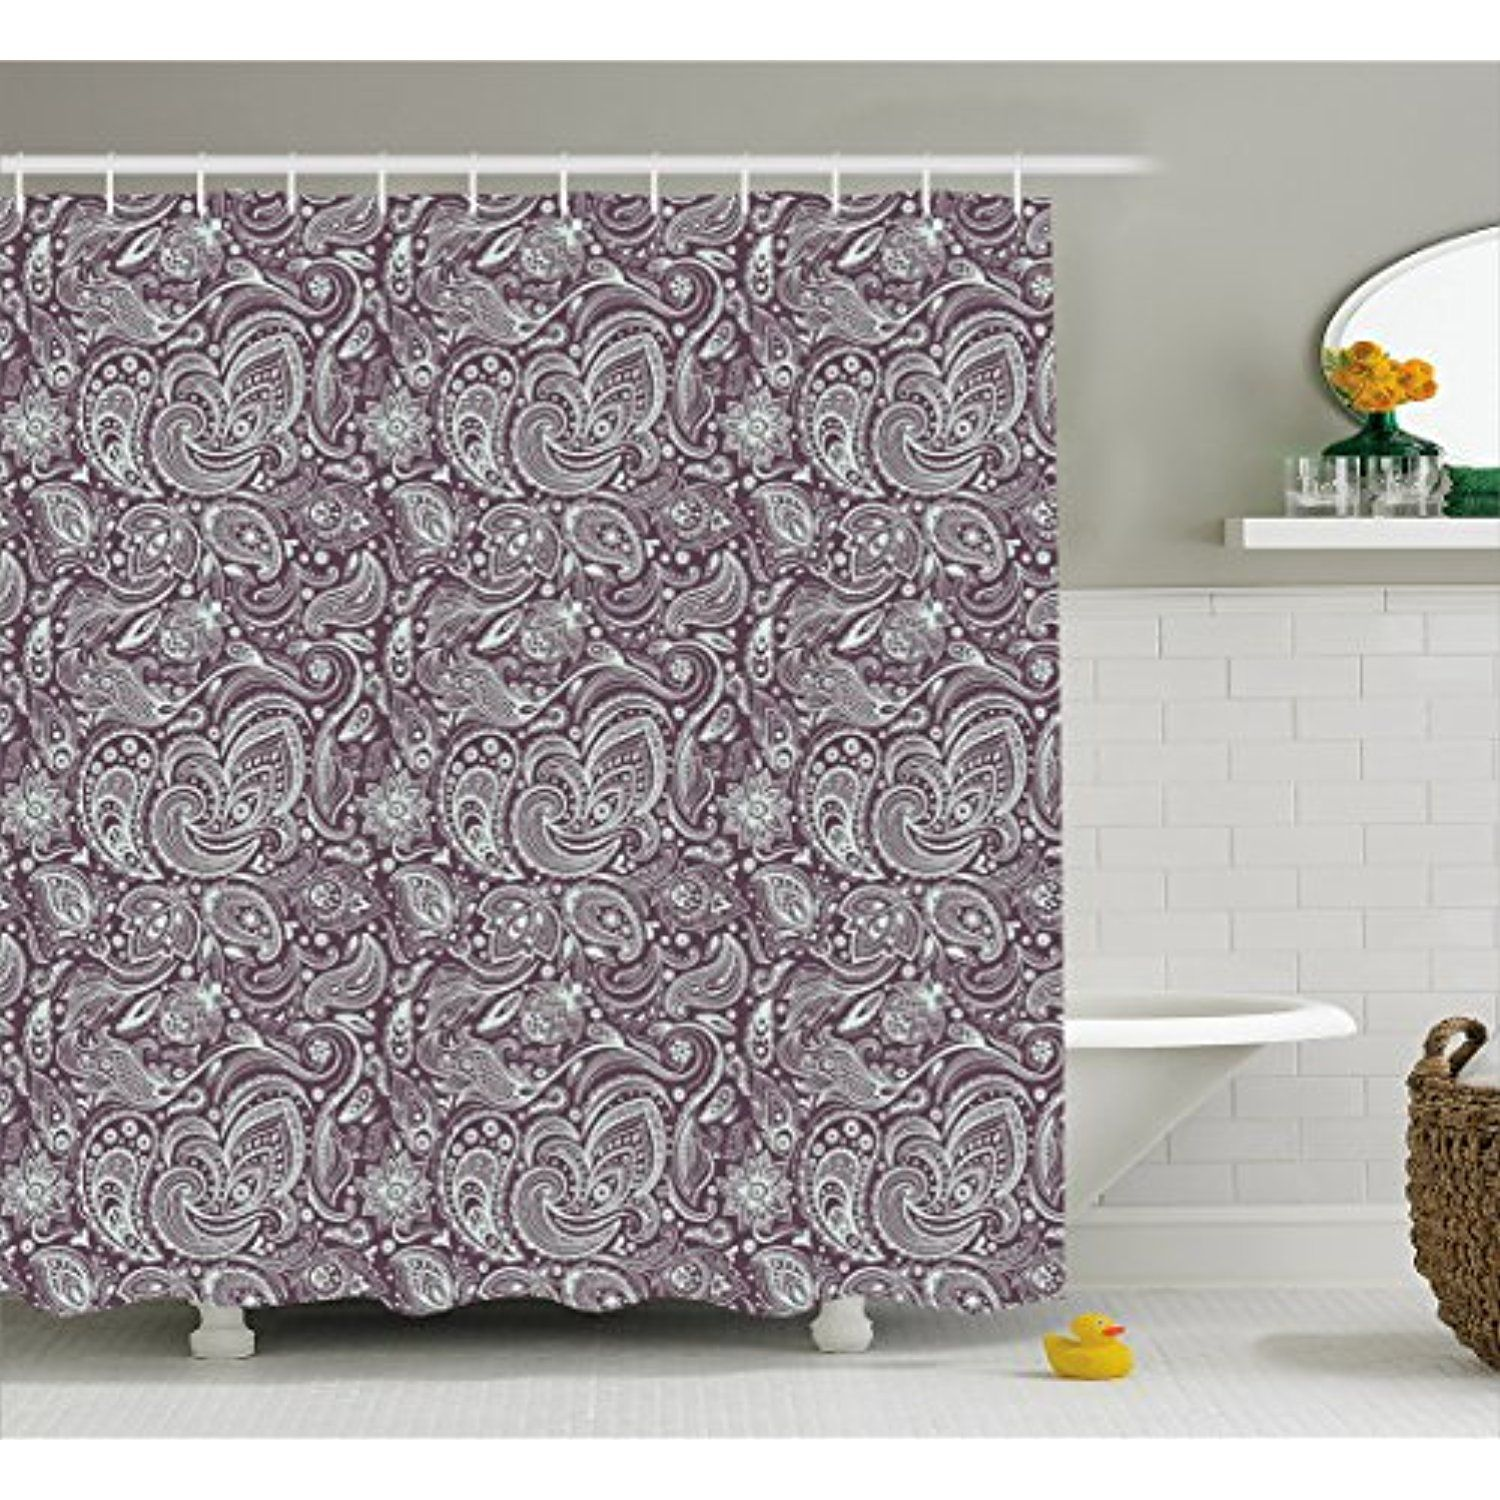 Paisley Shower Curtain by Lunarable, Abstract Ancient Motifs Paisley ...